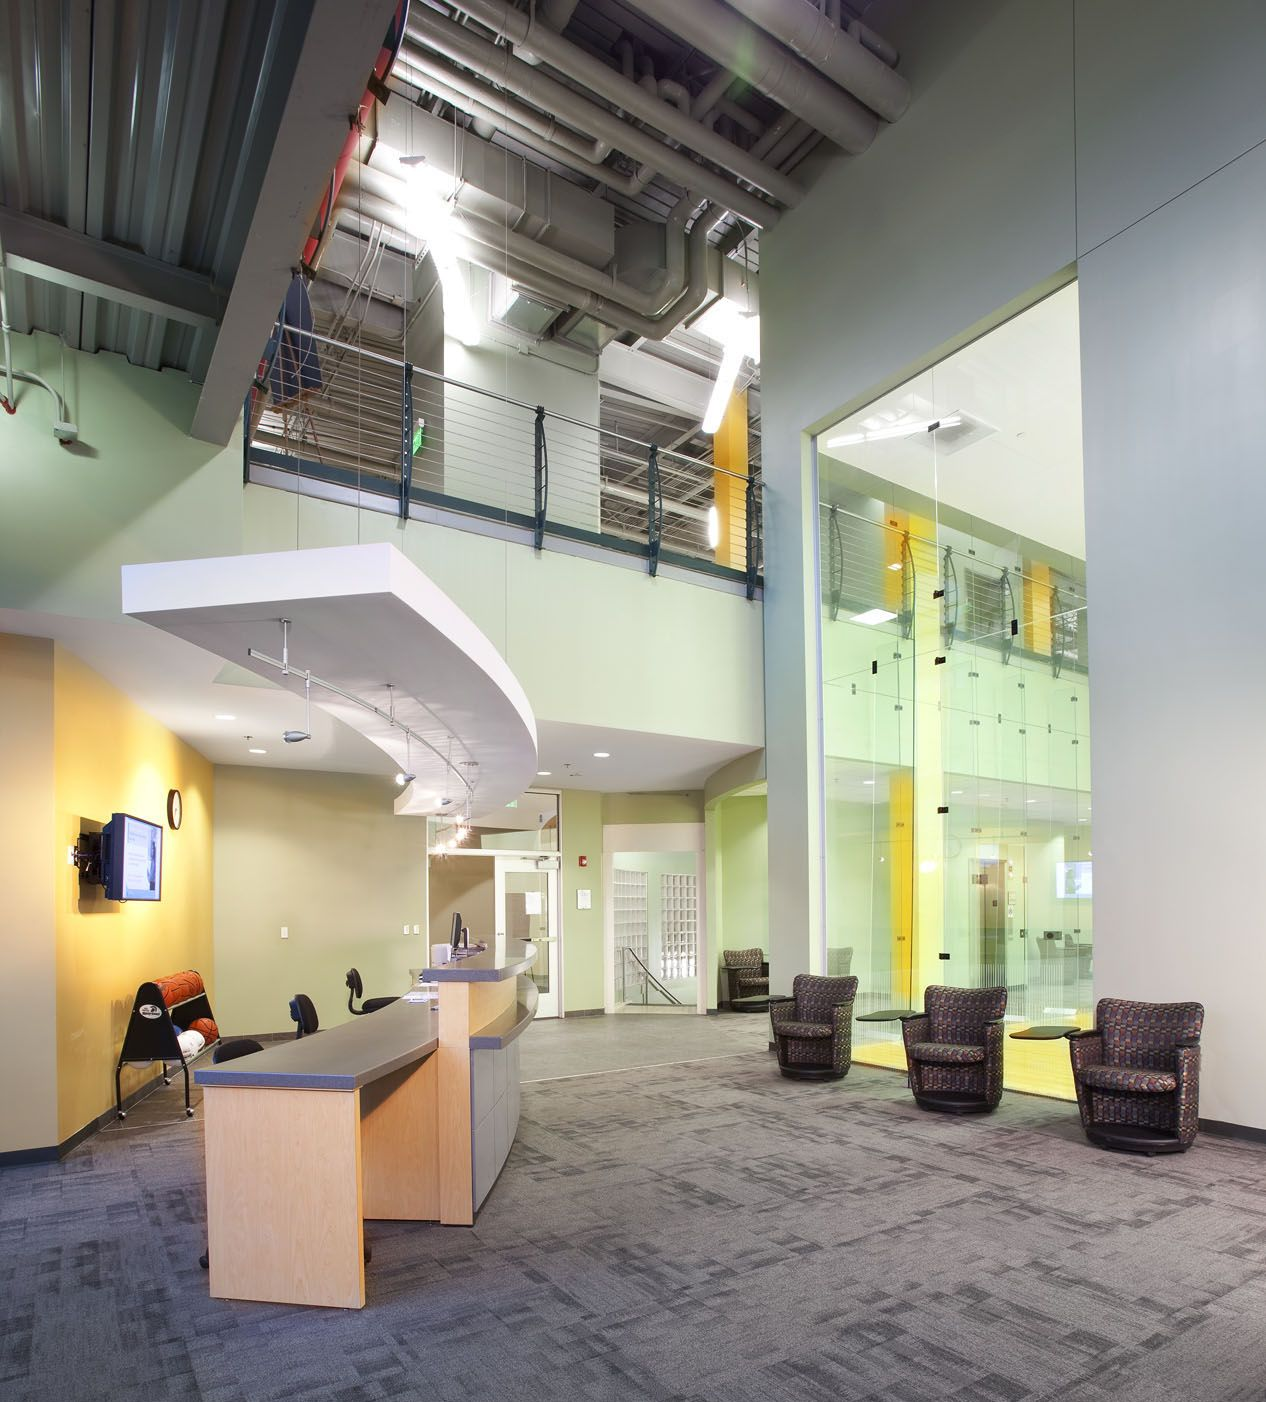 USC Upstate Health Education Complex By McMillan Pazdan Smith Architecture